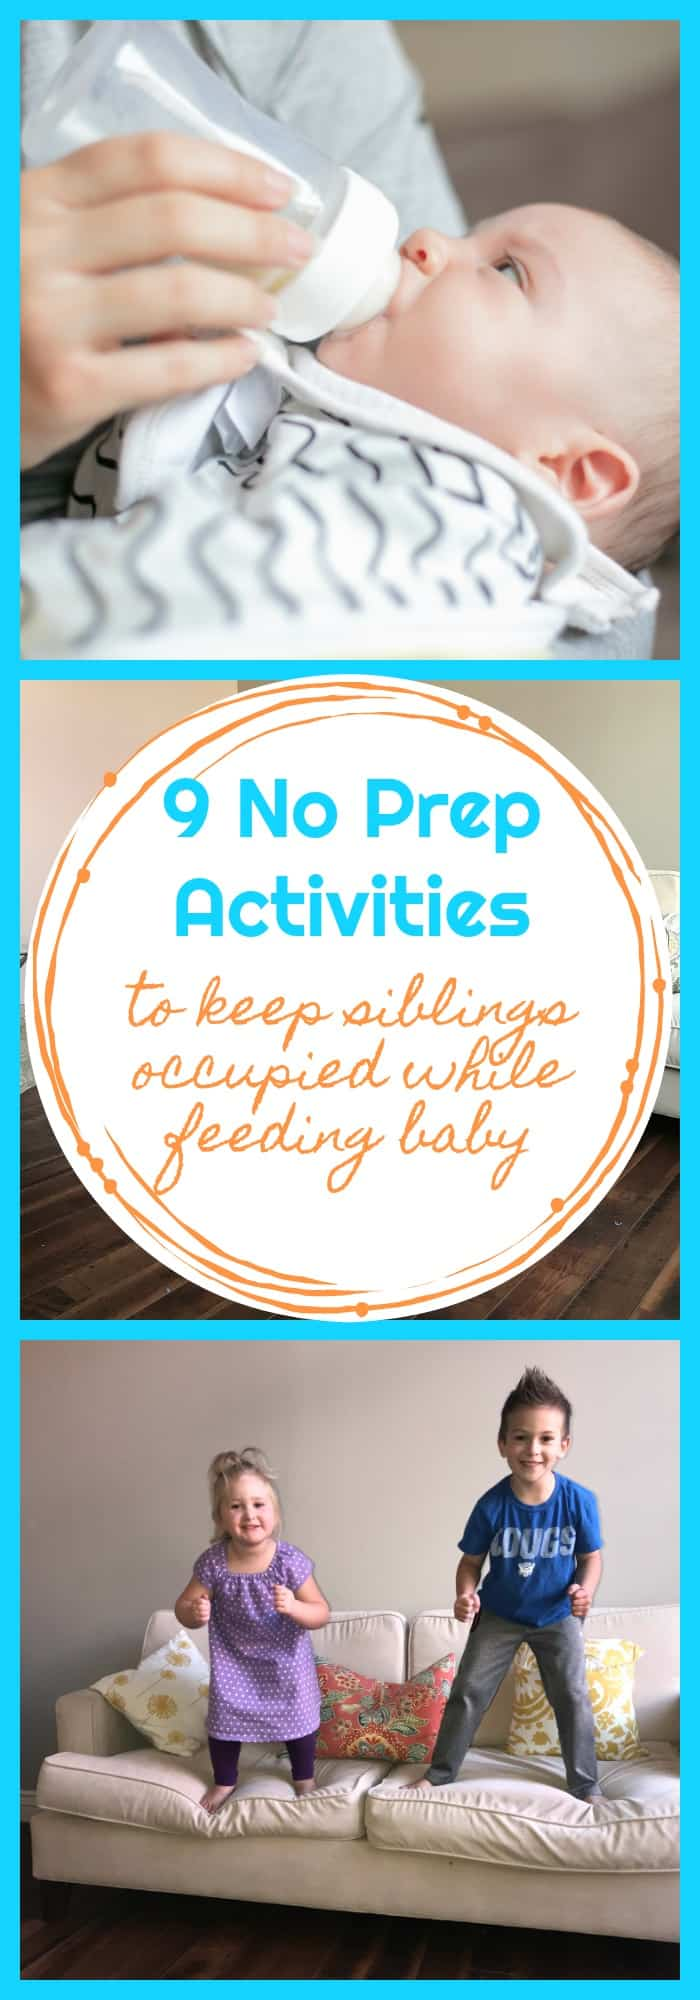 9 No Prep Activities to keep siblings occupied while feeding baby